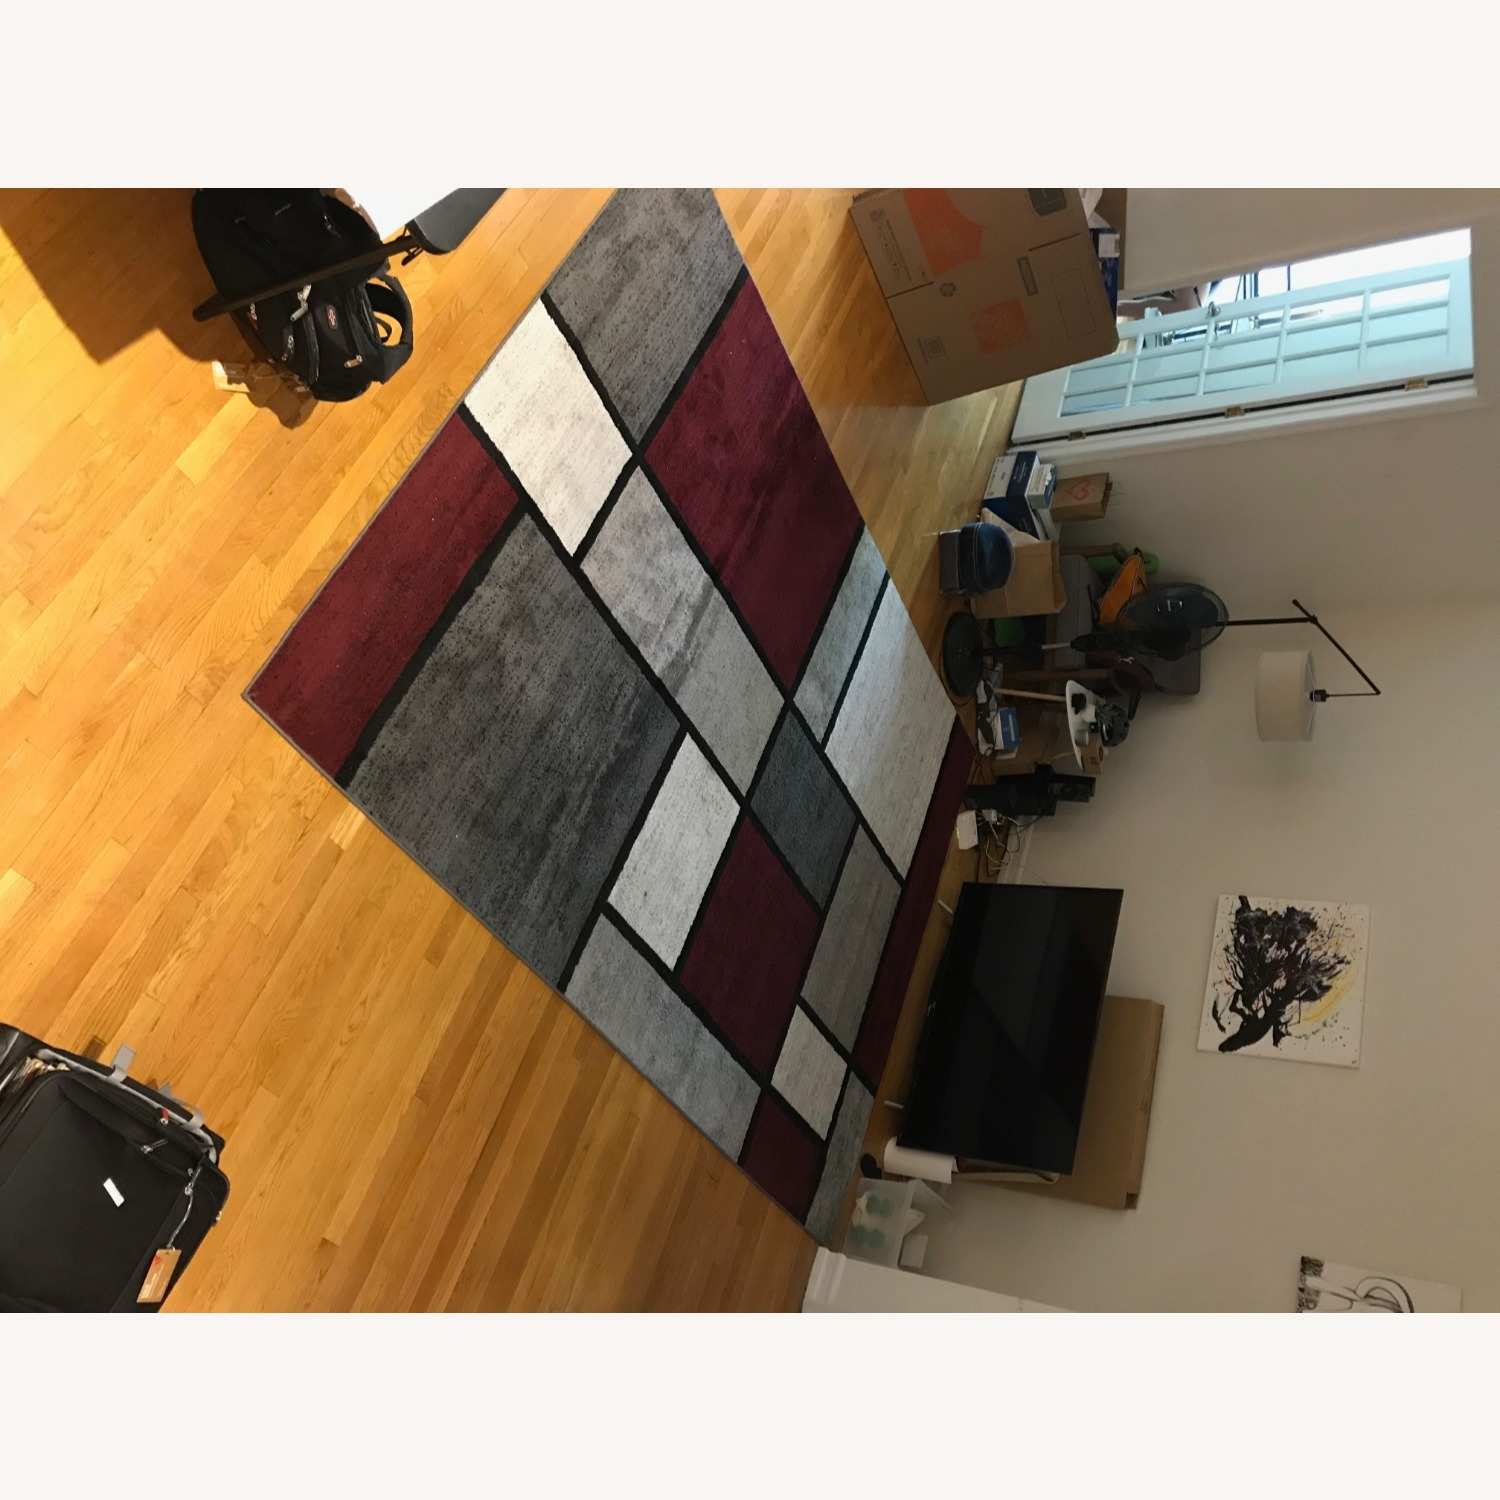 8' x 10' Red White and Grey Area Rug w Rug Pad - image-11